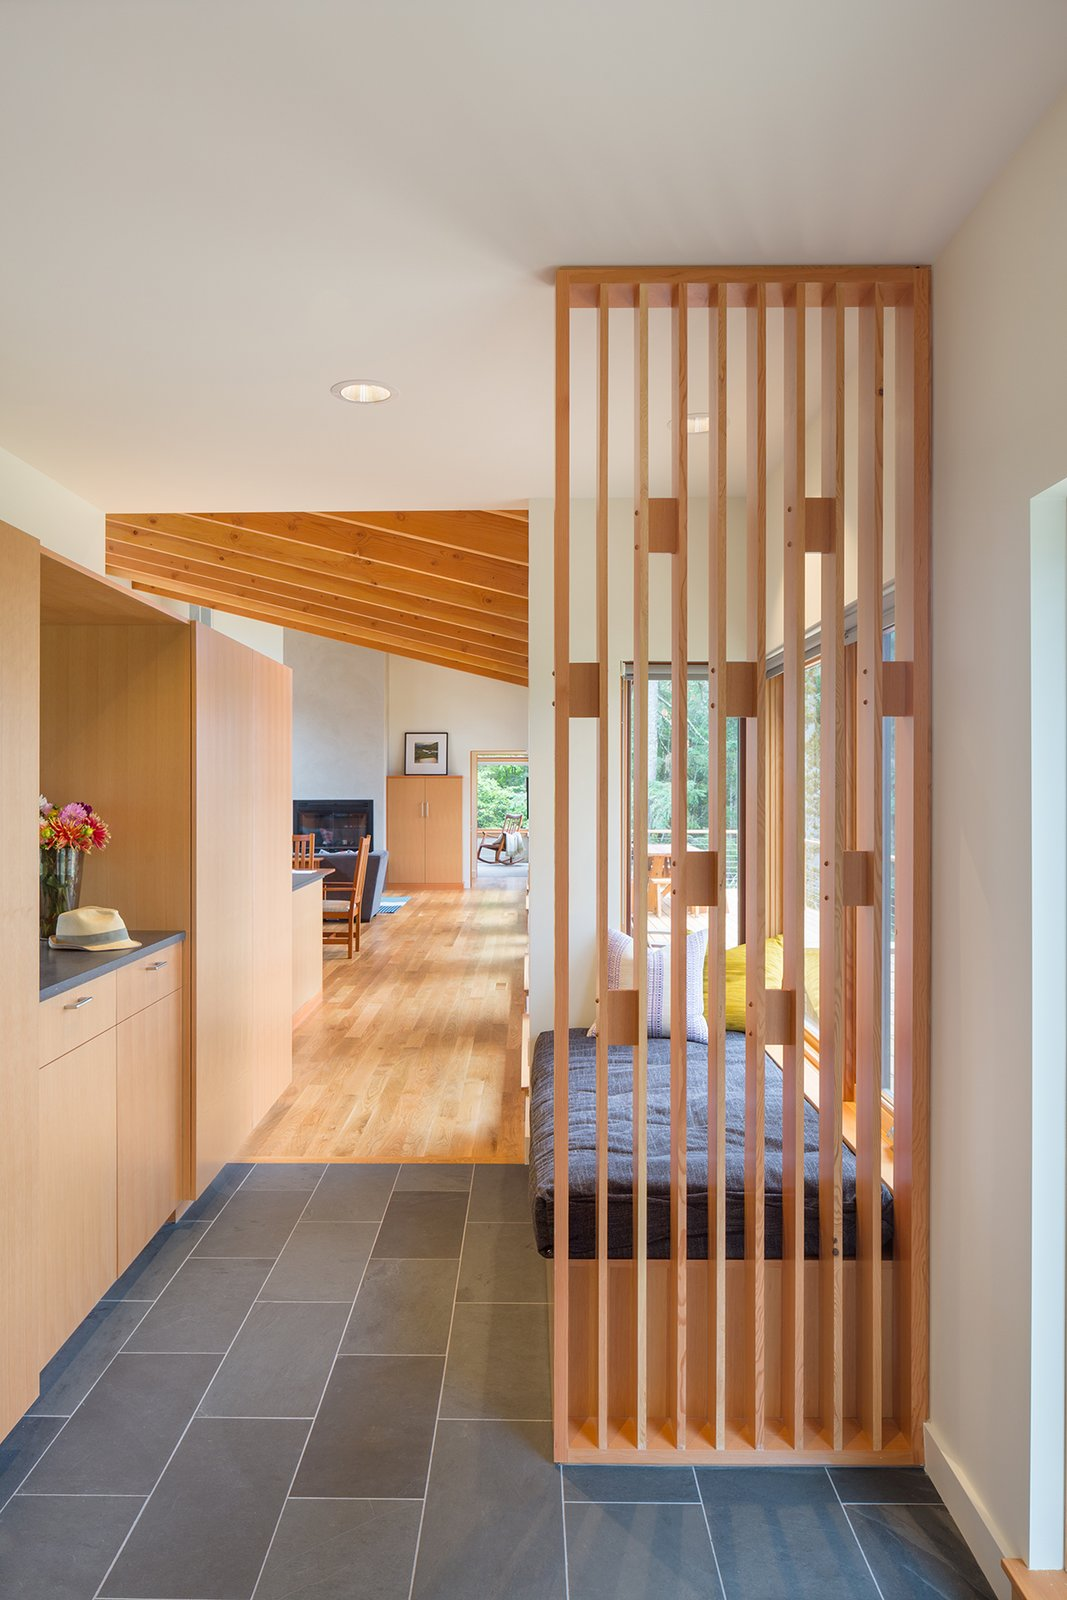 A playful wood screen greets visitors at the front entry, as well as providing support for a cushioned bench seat. Durable materials such as the Doug Fir cabinetry, White Oak flooring and a slate tile floor provide warmth and longevity.